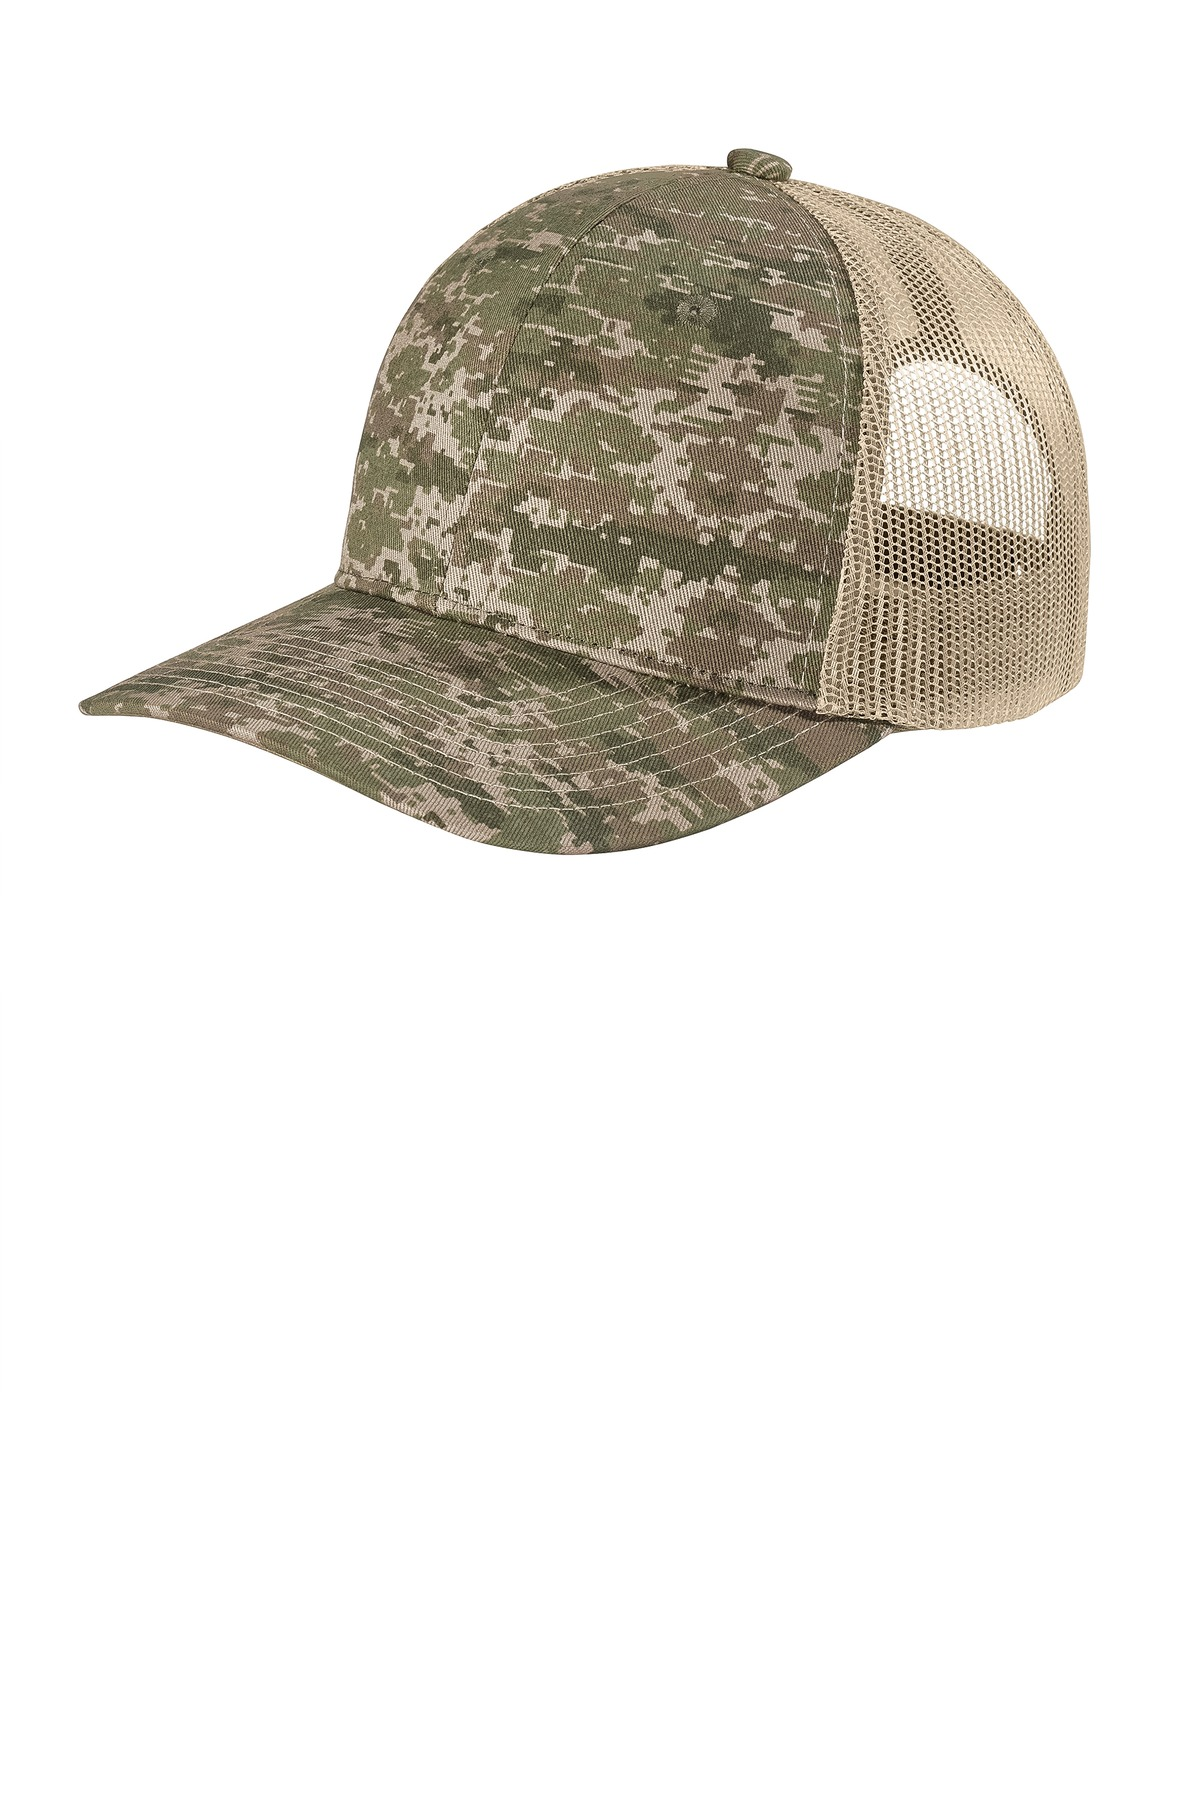 Port Authority  ®  Digi Camo Snapback Trucker Cap C114 - Olive Drab Green Digi/ Coyote Brown